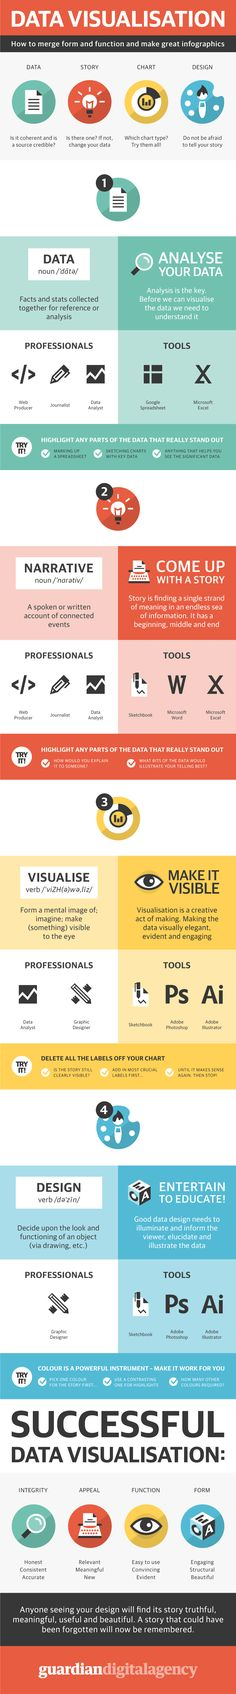 Business infographic & data visualisation Data Visualization: How To Merge Form & Function And Make Great Infographic Description How to Big Data, Visual Analytics, Make An Infographic, Communication, Web Design, Layout Design, Information Design, Business Intelligence, Data Science